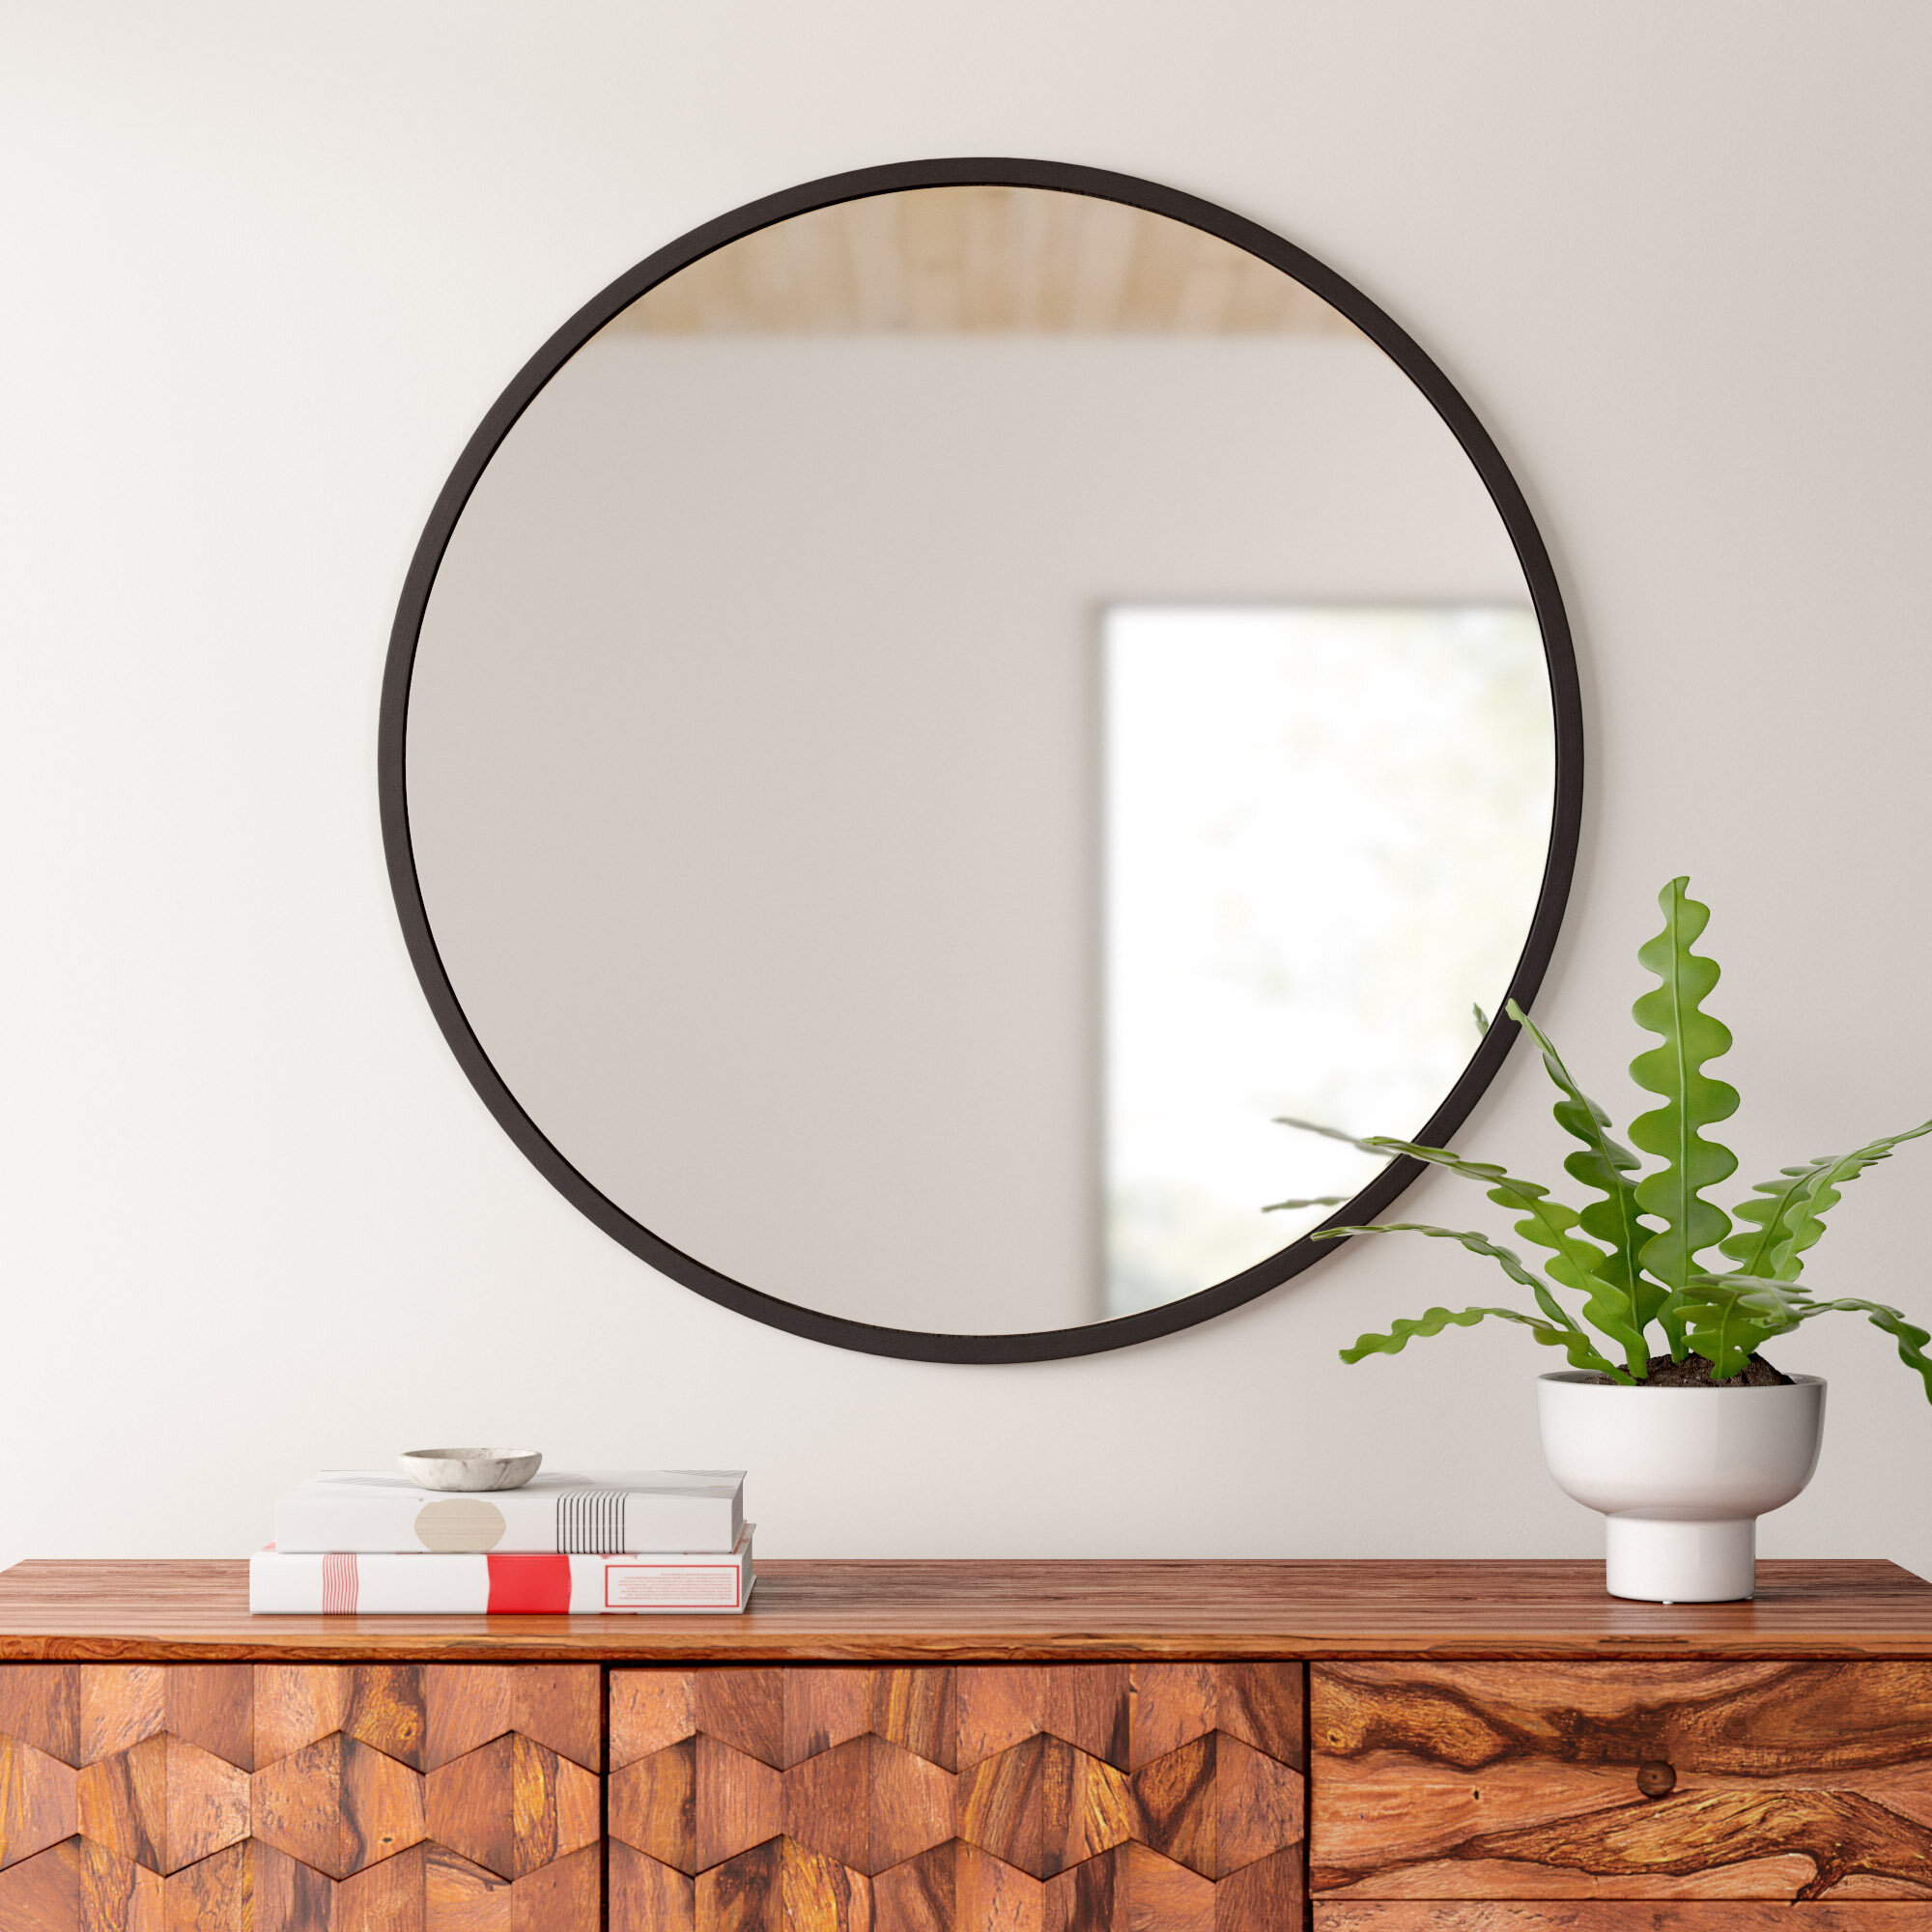 Umbra Hub Modern And Contemporary Accent Mirror With Levan Modern & Contemporary Accent Mirrors (View 12 of 20)